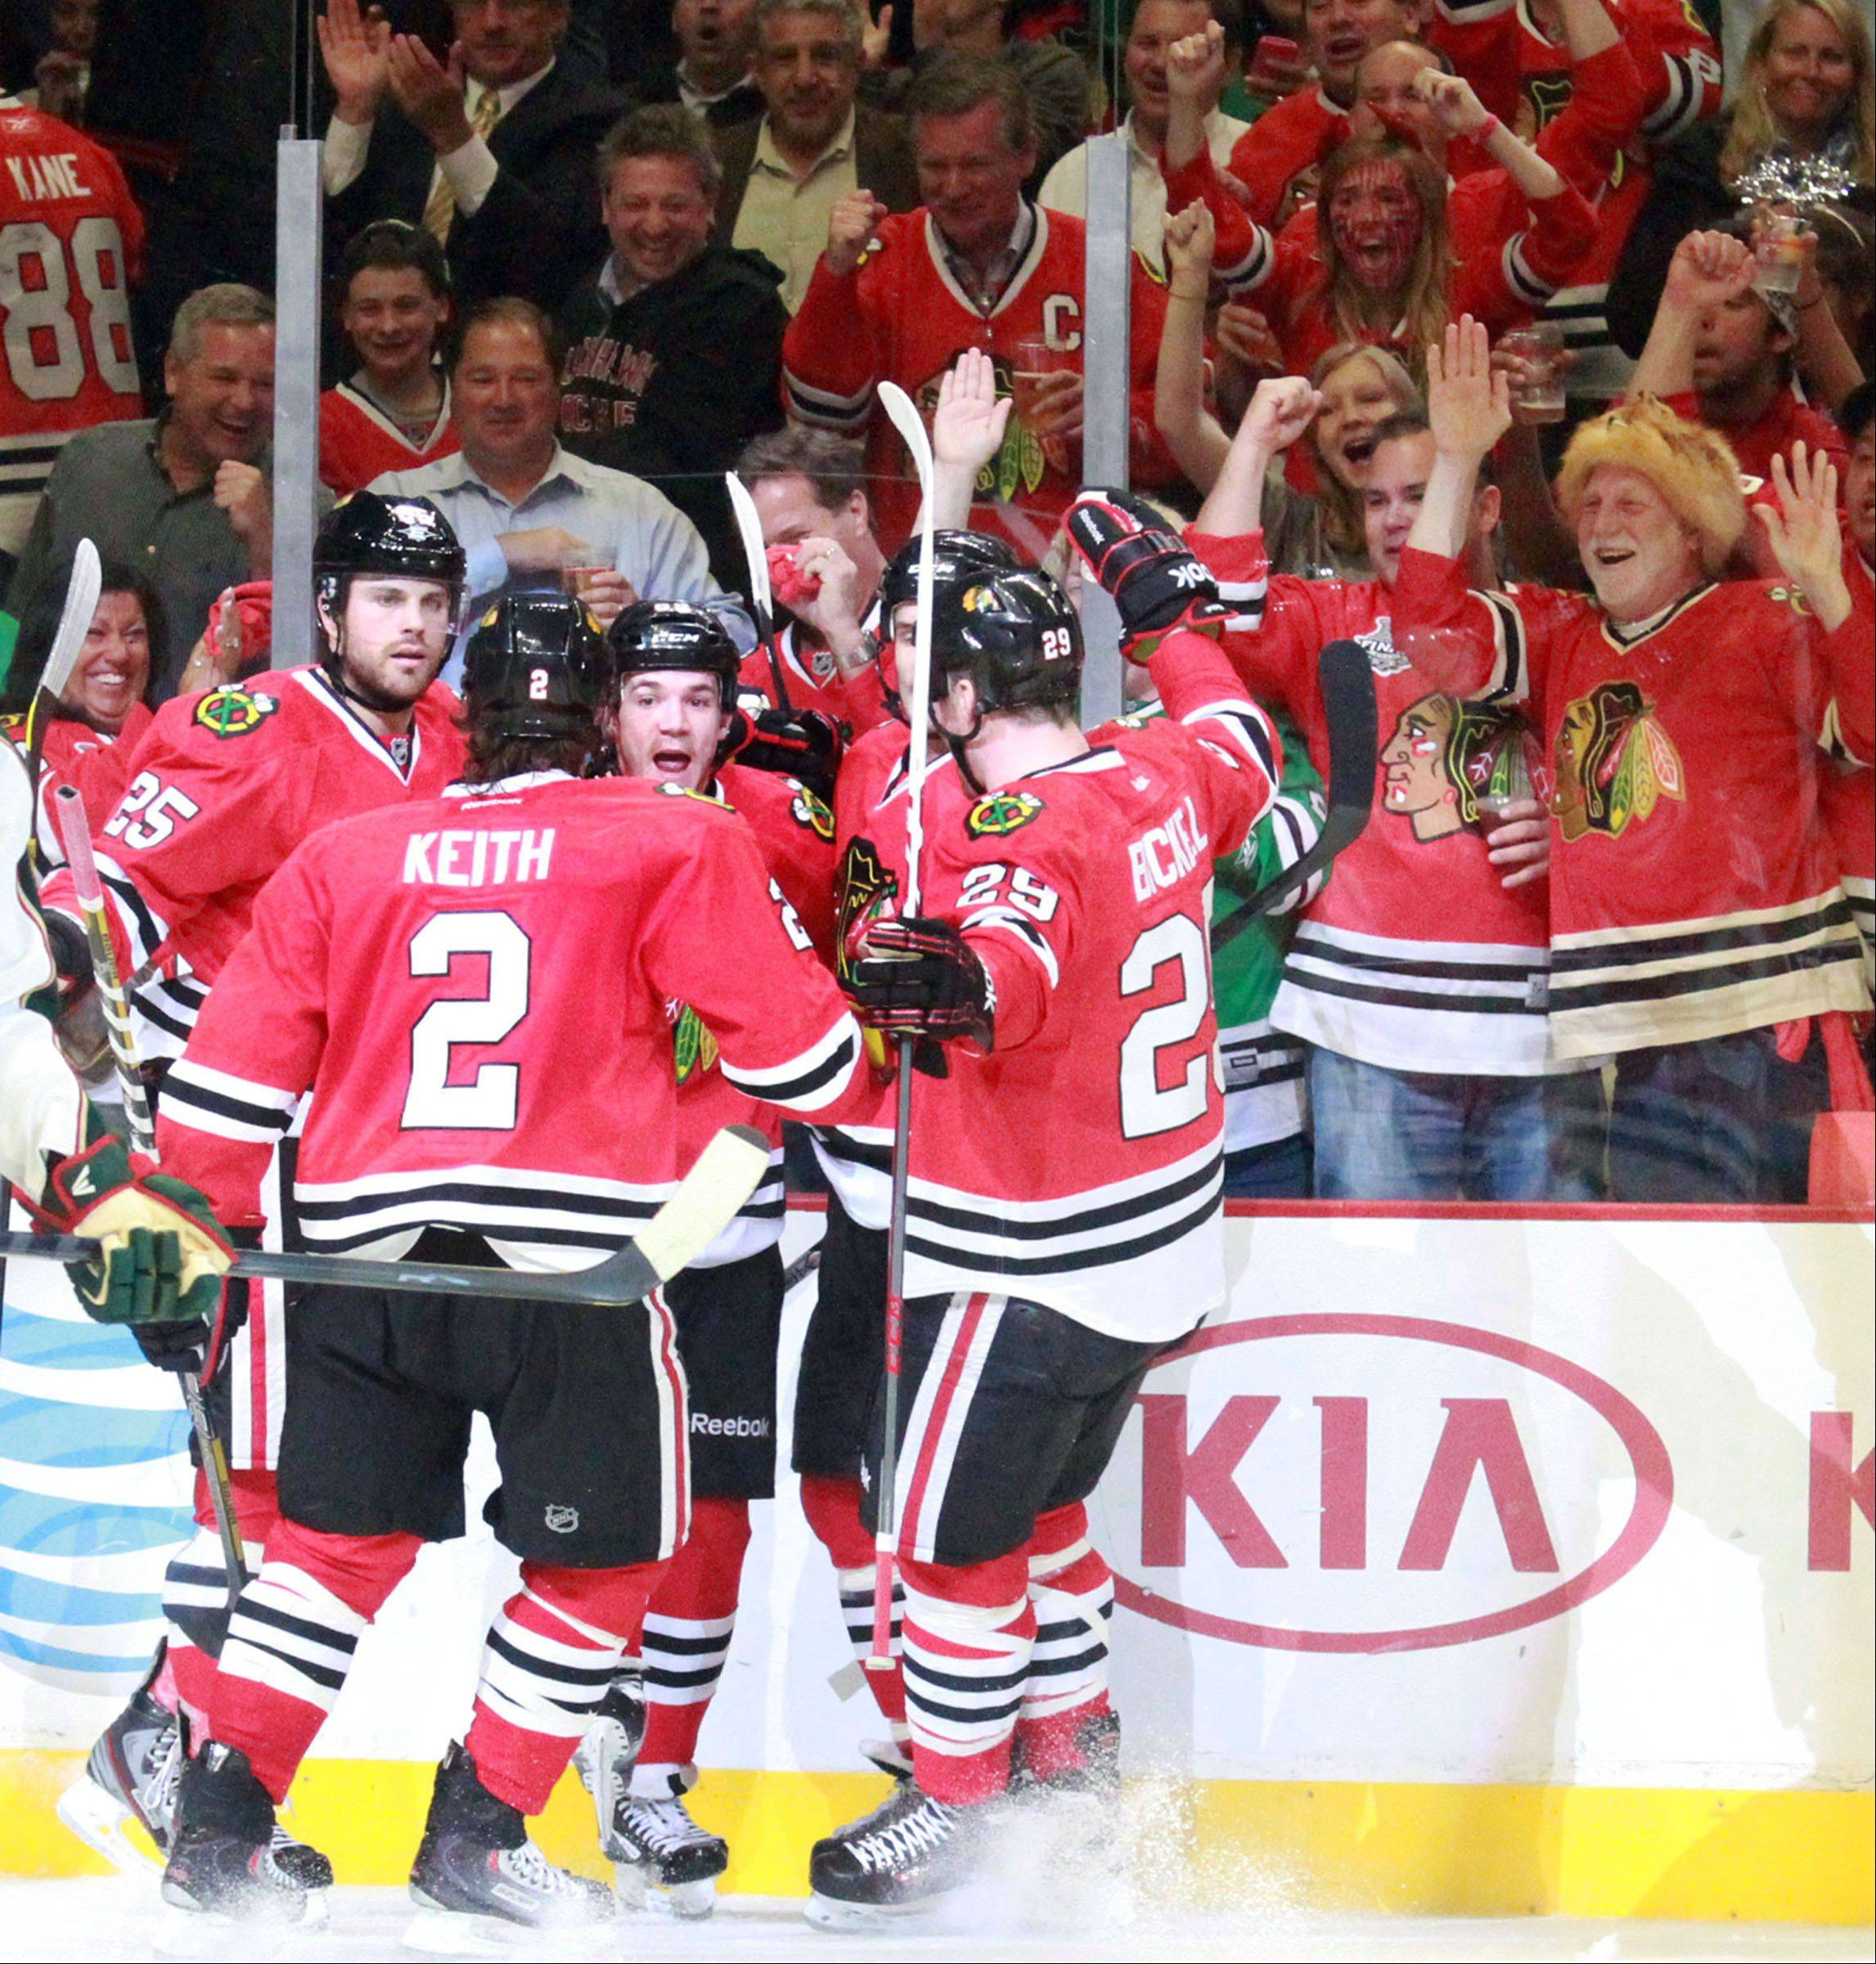 With fans on their feet, the Blackhawks celebrate a goal by center Andrew Shaw in Game 5 of their Western Conference first-round playoff series against Minnesota.